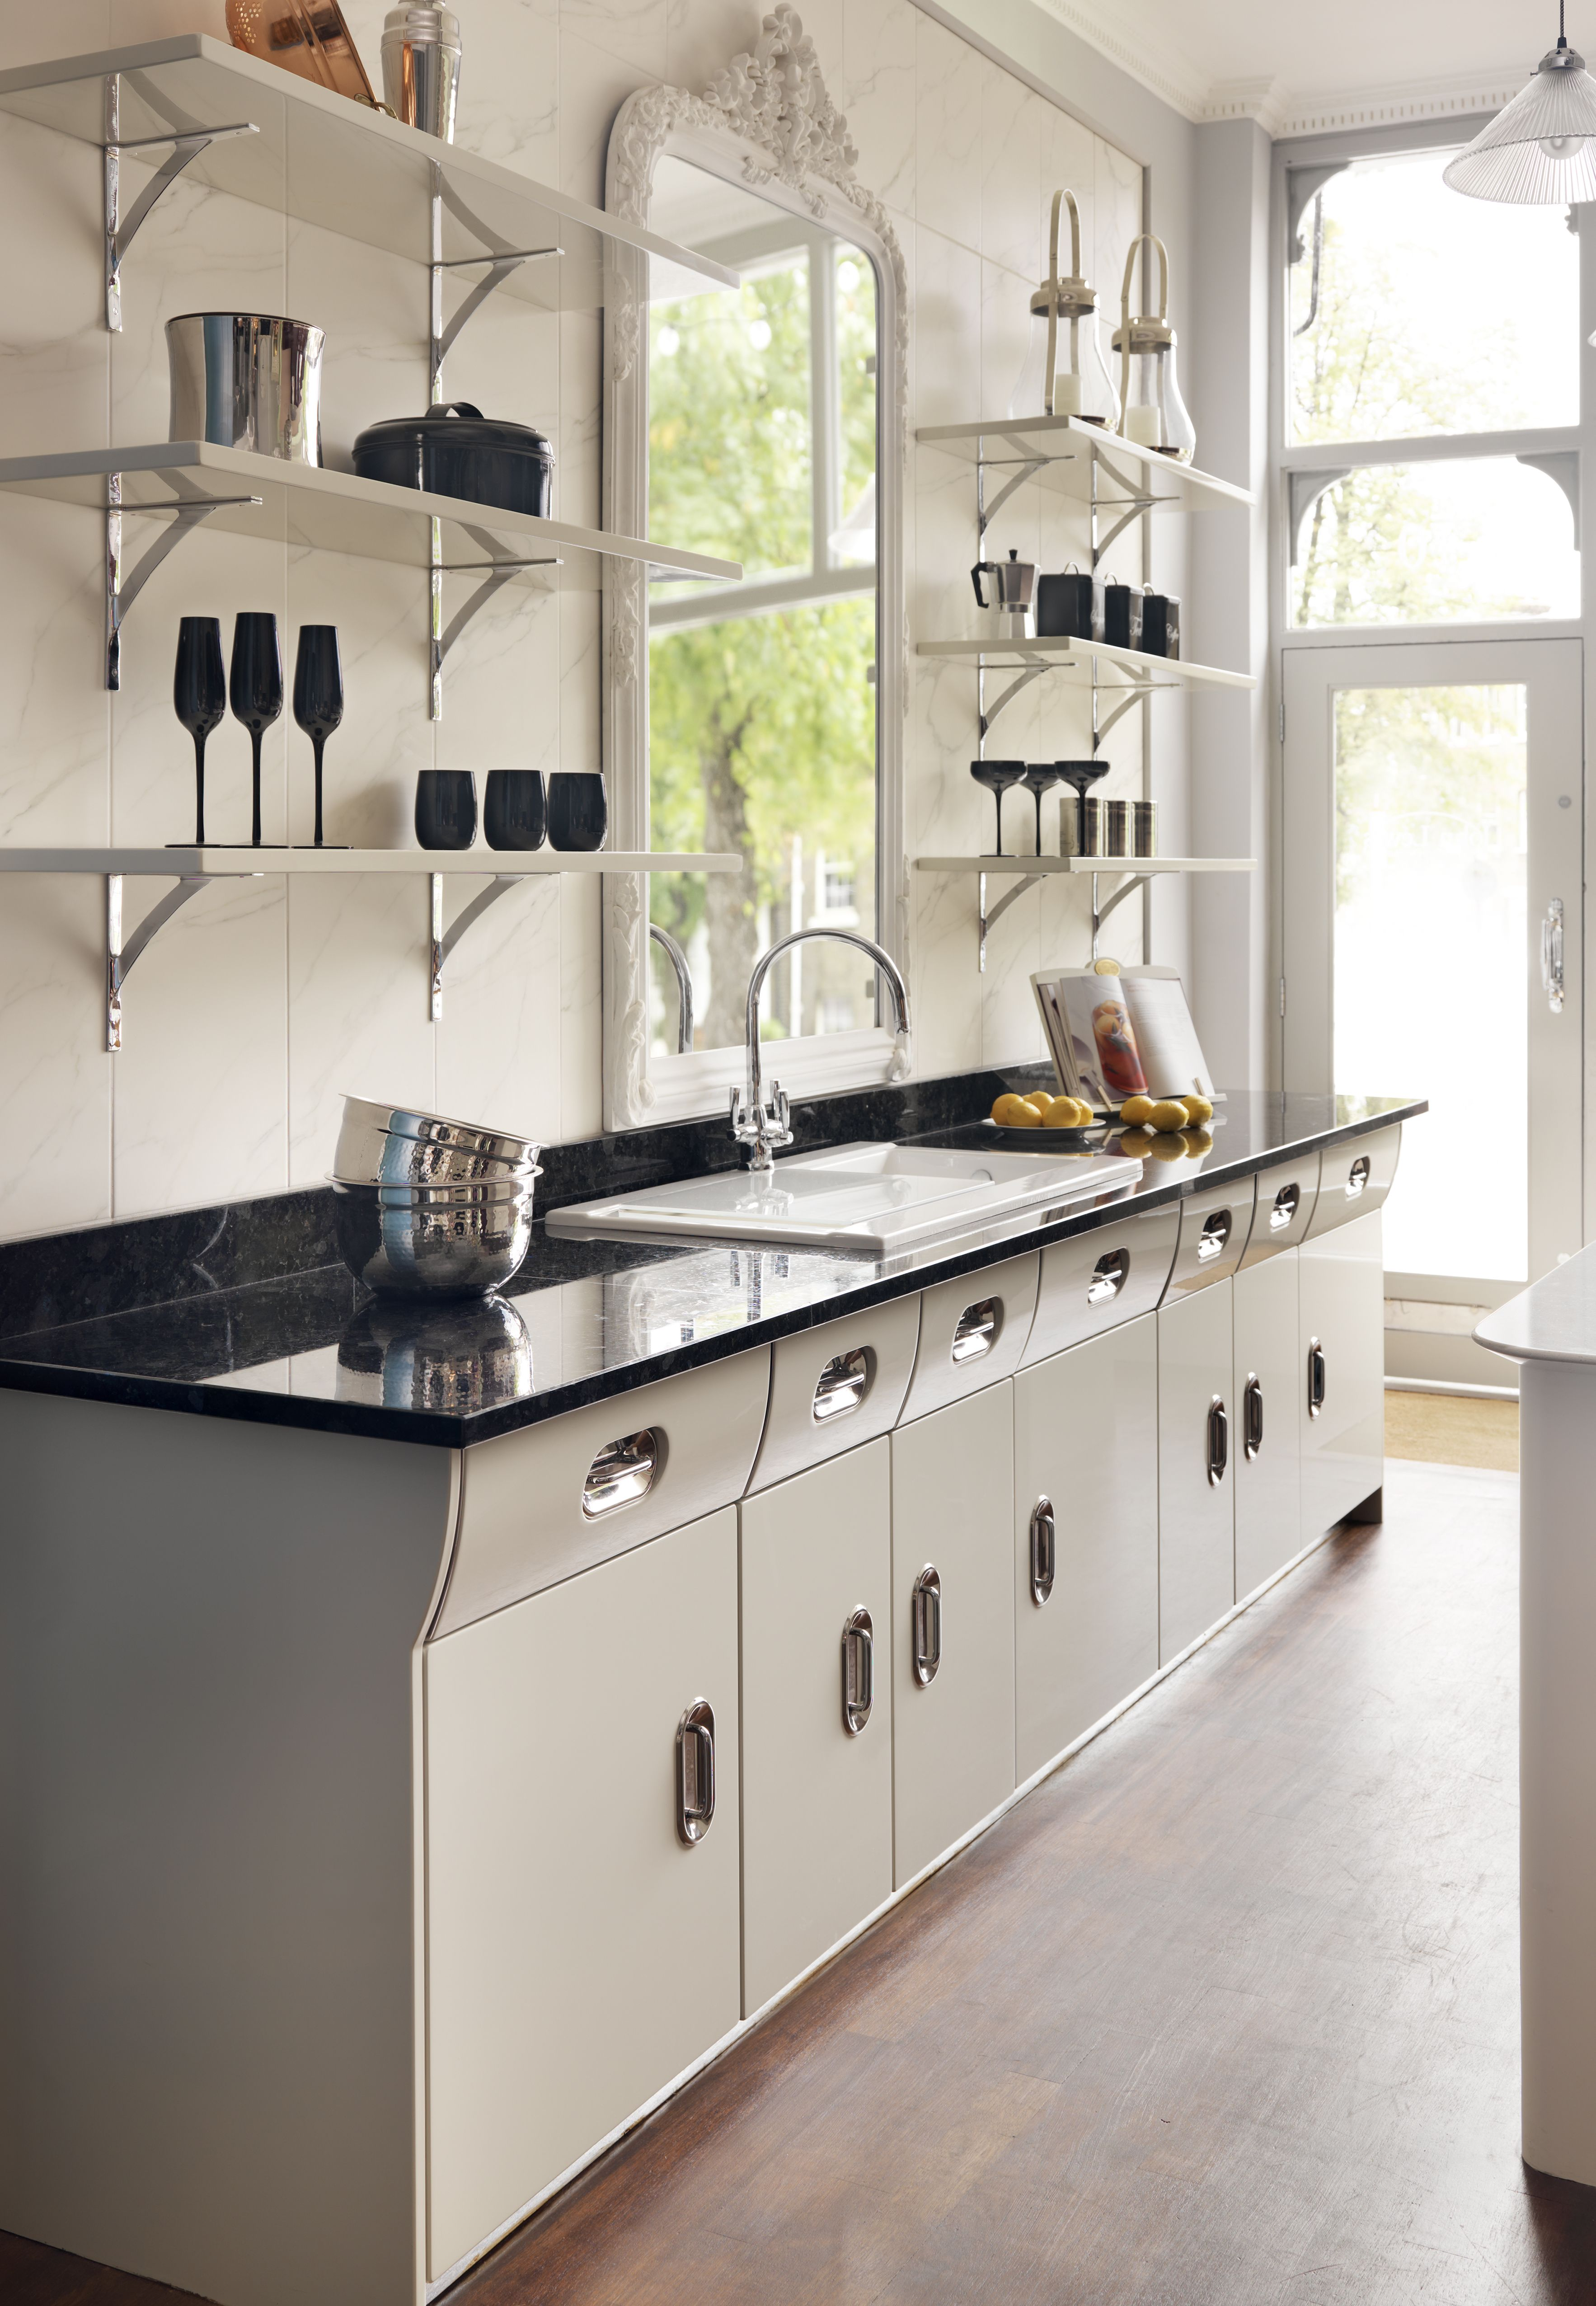 Deli Style Shelves Complement The Look Creme De La Creme Vintage Kitchen From John Lewis Of Hungerfor Retro Kitchen Modern Kitchen Set Kitchen Cabinet Styles